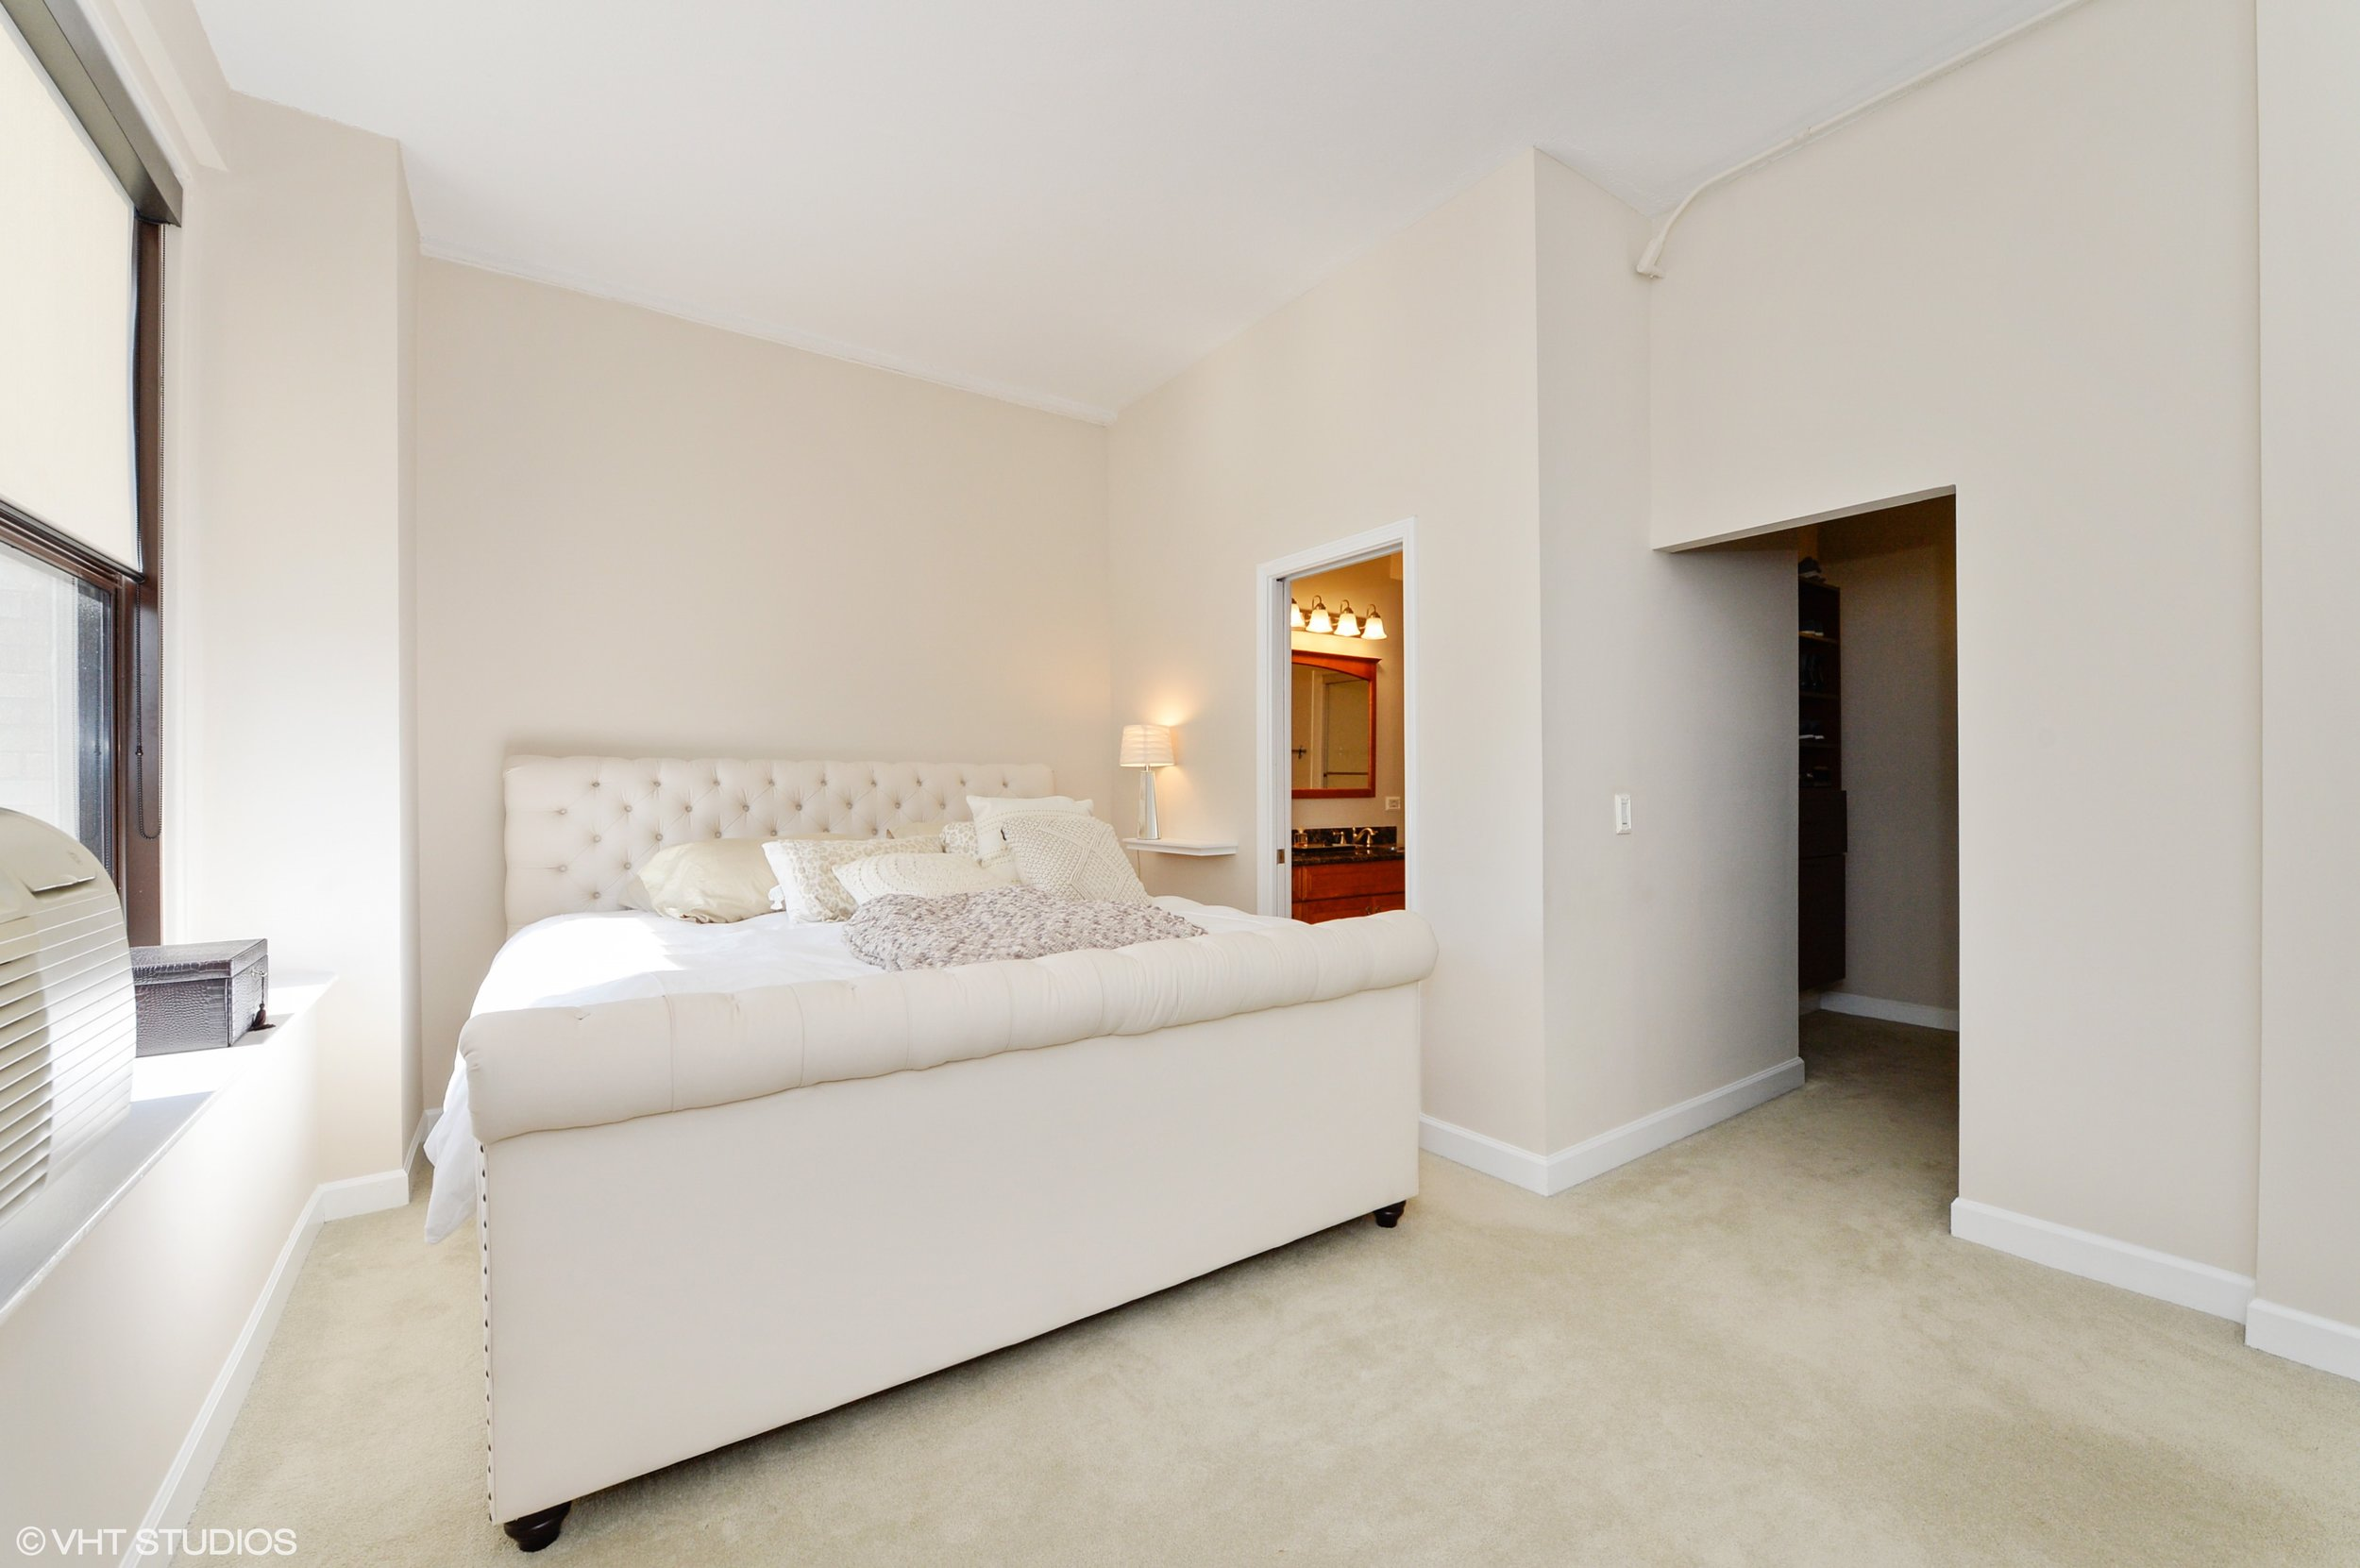 06_600SDearbornSt_Unit1307_14_MasterBedroom_HiRes.jpg